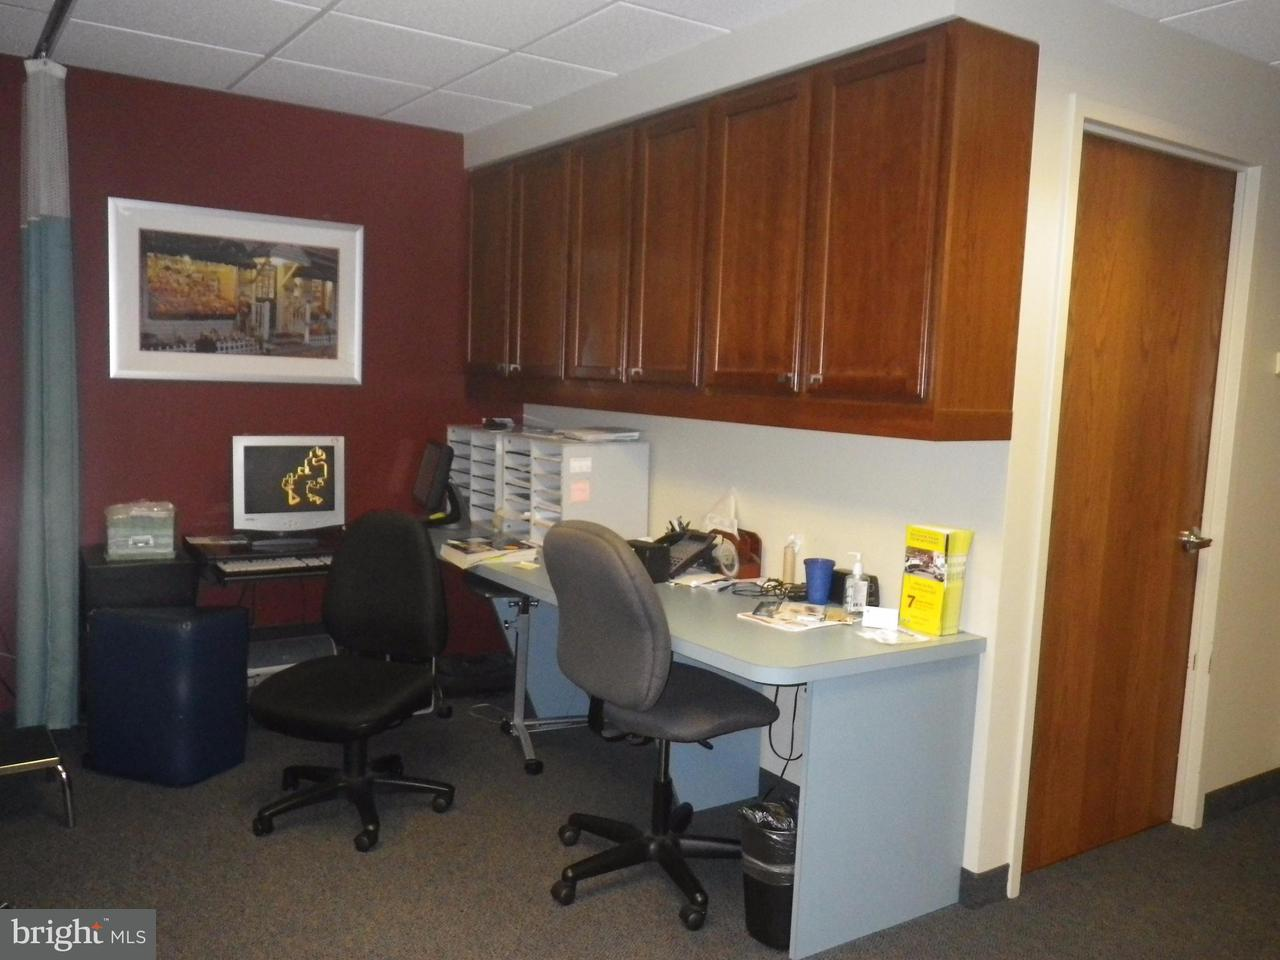 Additional photo for property listing at 3200 TOWER OAKS BLVD #4B1 3200 TOWER OAKS BLVD #4B1 Rockville, Maryland 20850 United States